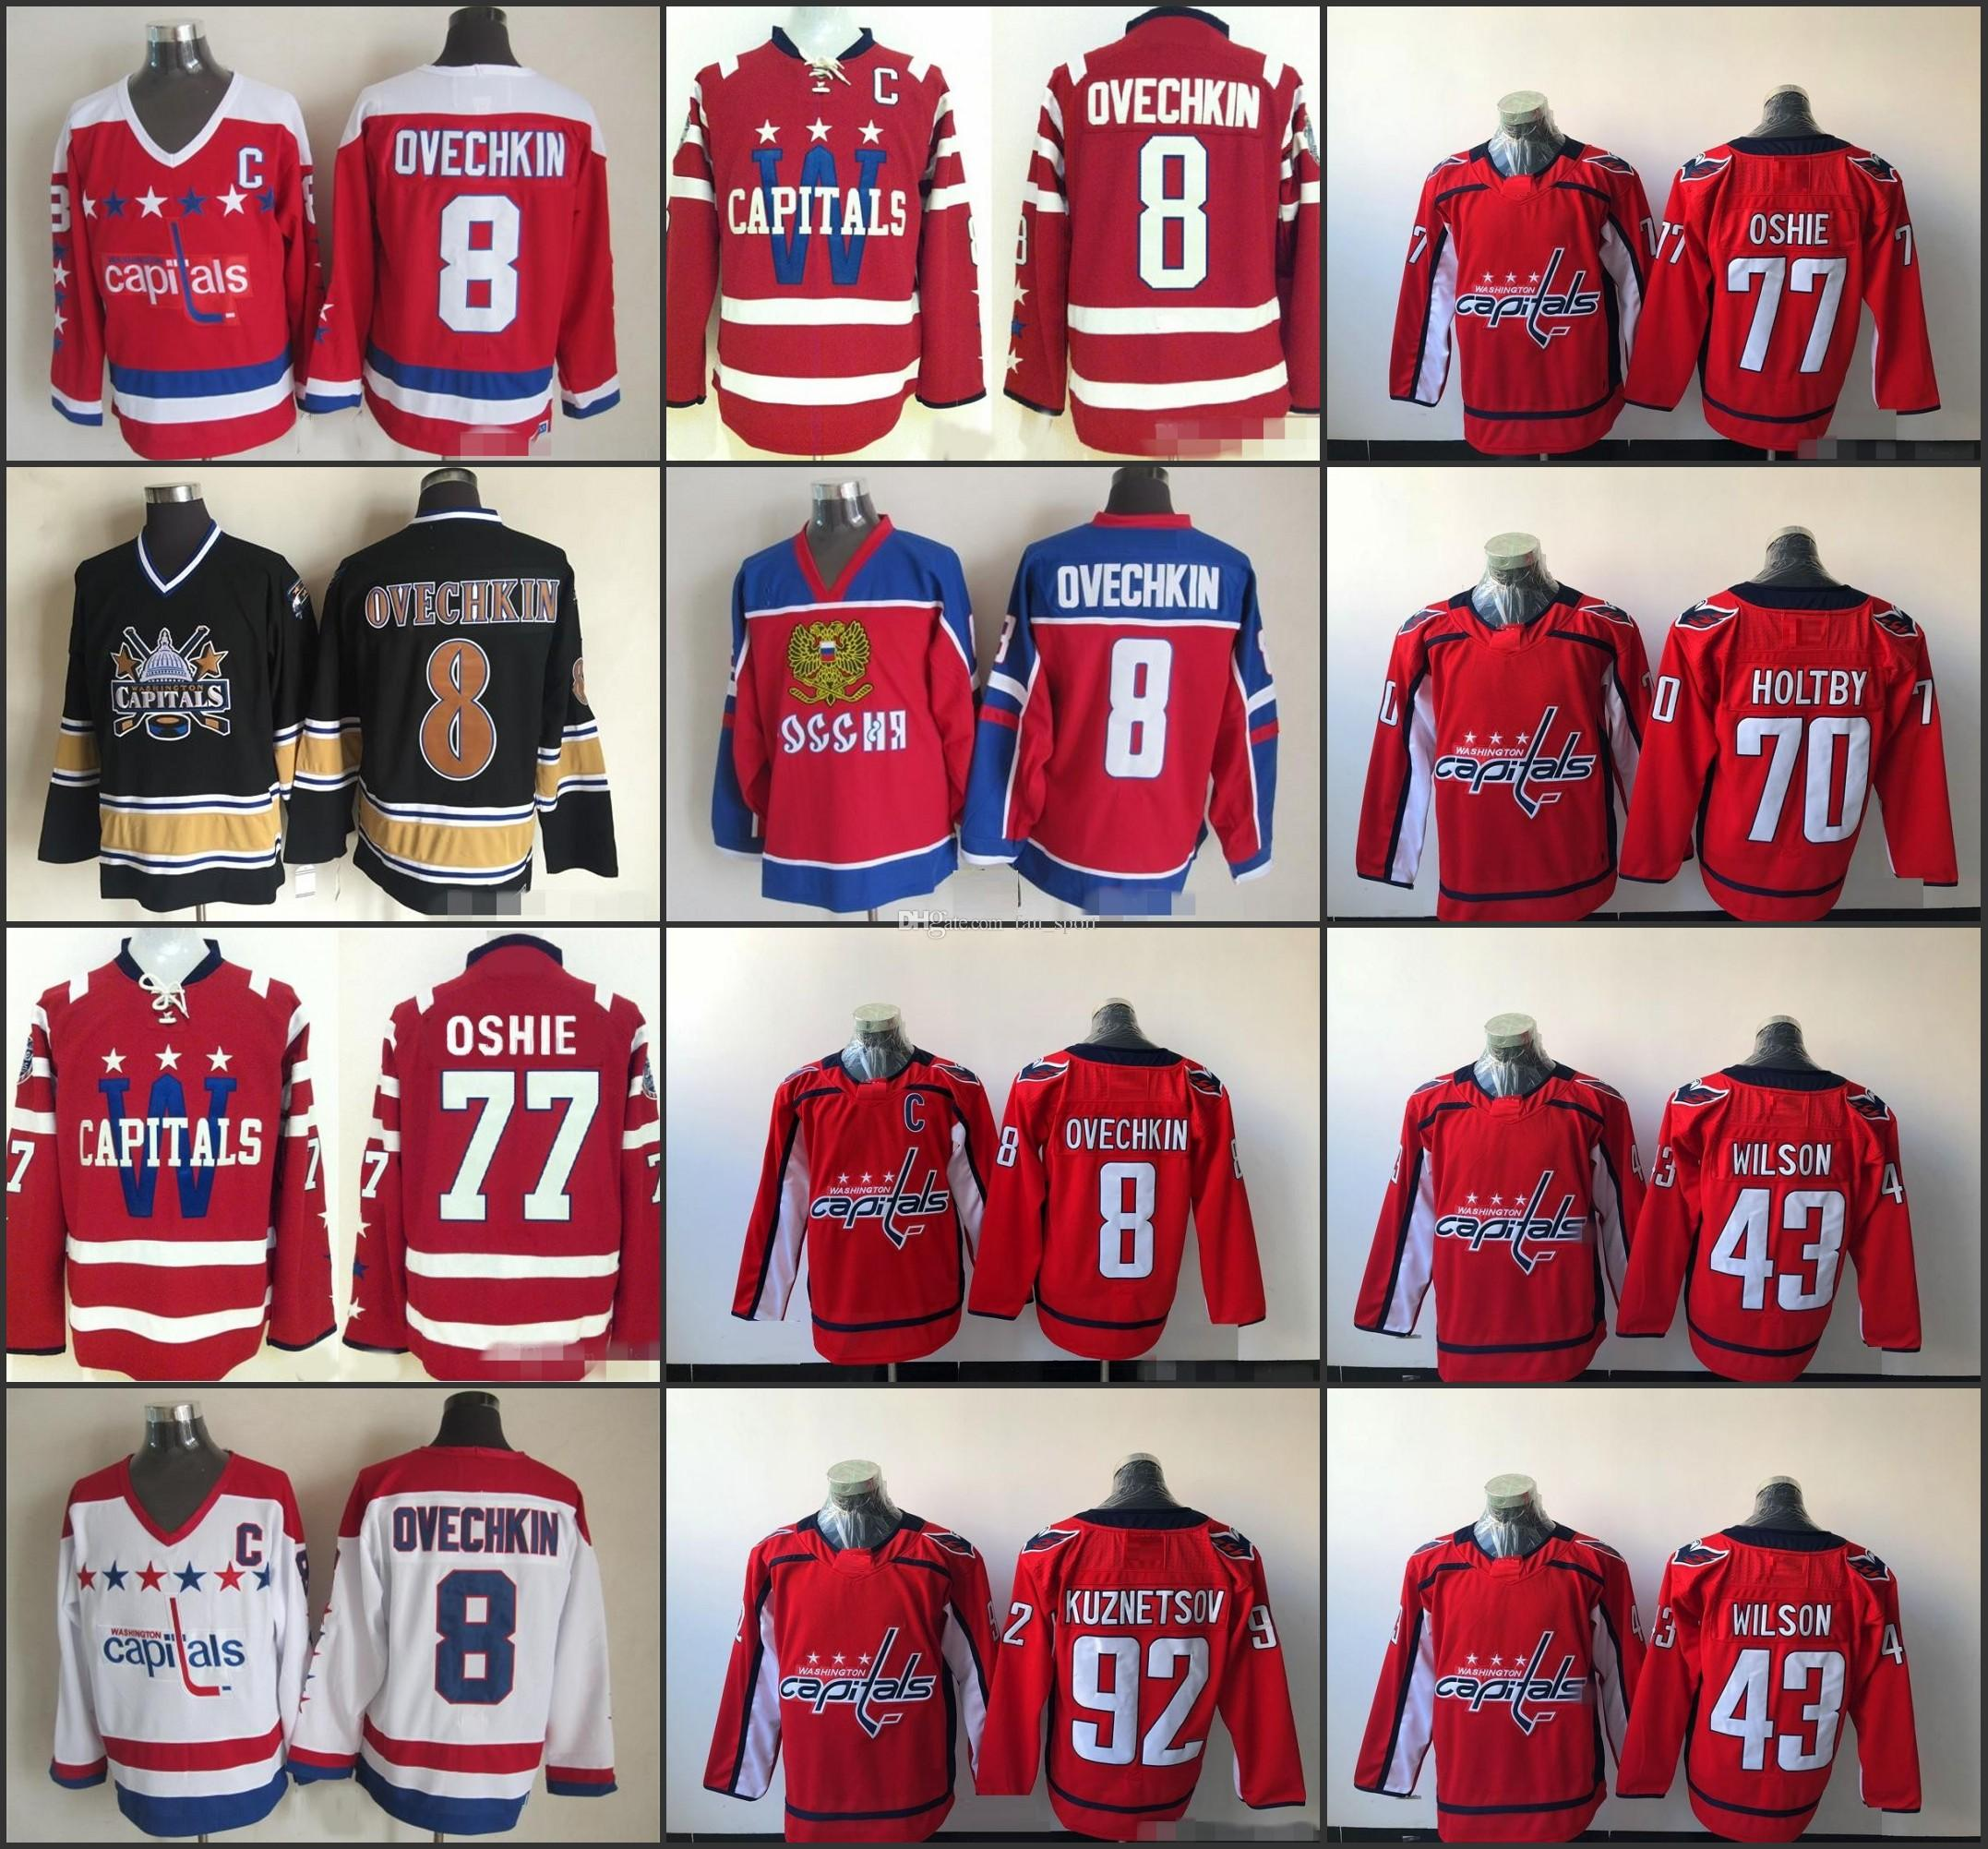 2019 2015 Washington Capitals Winter Classic Hockey Jerseys 8 Alex Ovechkin  77 TJ Oshie 92 Evgeny Kuznetsov 70 Braden Holtby Tom Wilson Jerseys From ... 2106e6efc